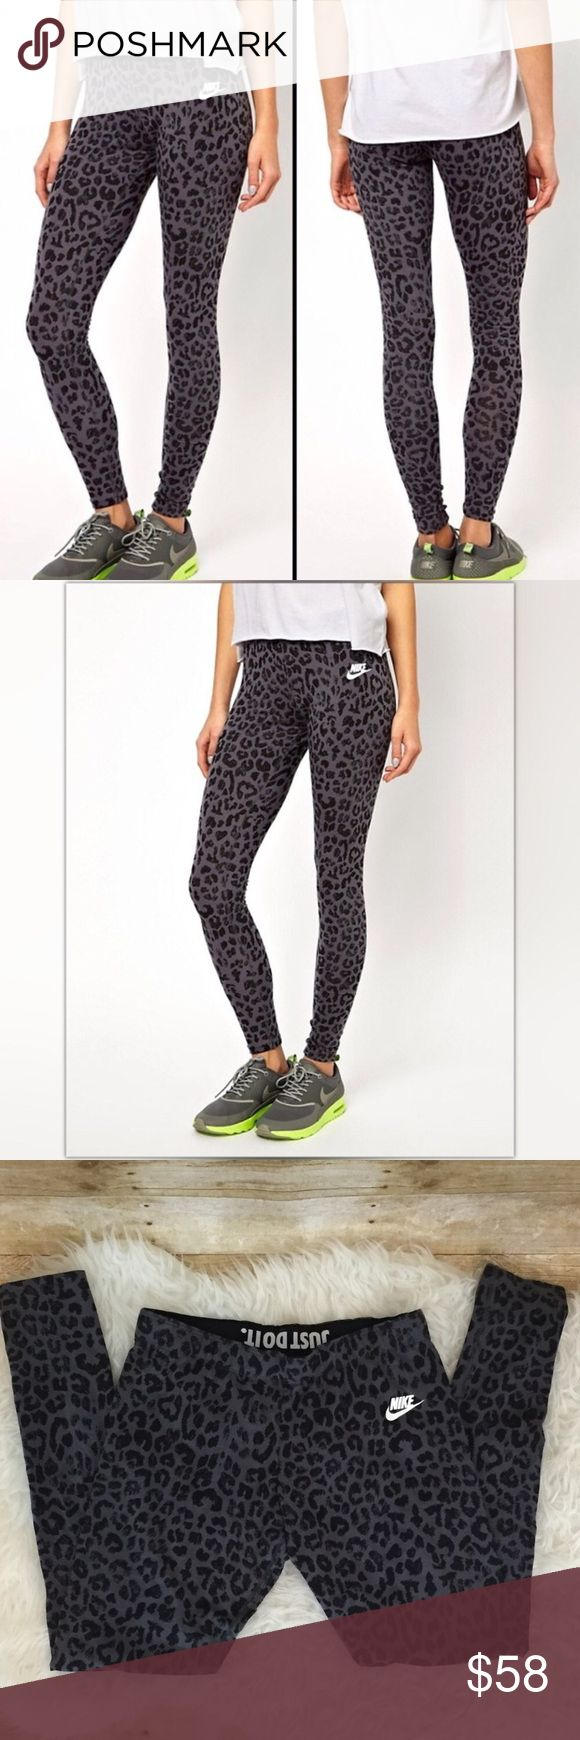 "Nike💕Classic Leg-A-See Running Cheetah Leggings 💕lovely Classic  Nike Leg-a-see leggings in a fun black cheetah print with elastic waistband that folds over to reveal ""just do it"" logo  💕condition: EUC with light wear but no flaws  💕size medium   💕material is 68% Cotton / 27% rayon/5x Spandex so as to not lose shape  🚫trades//bundle to save ✅✅ Nike Pants Leggings"